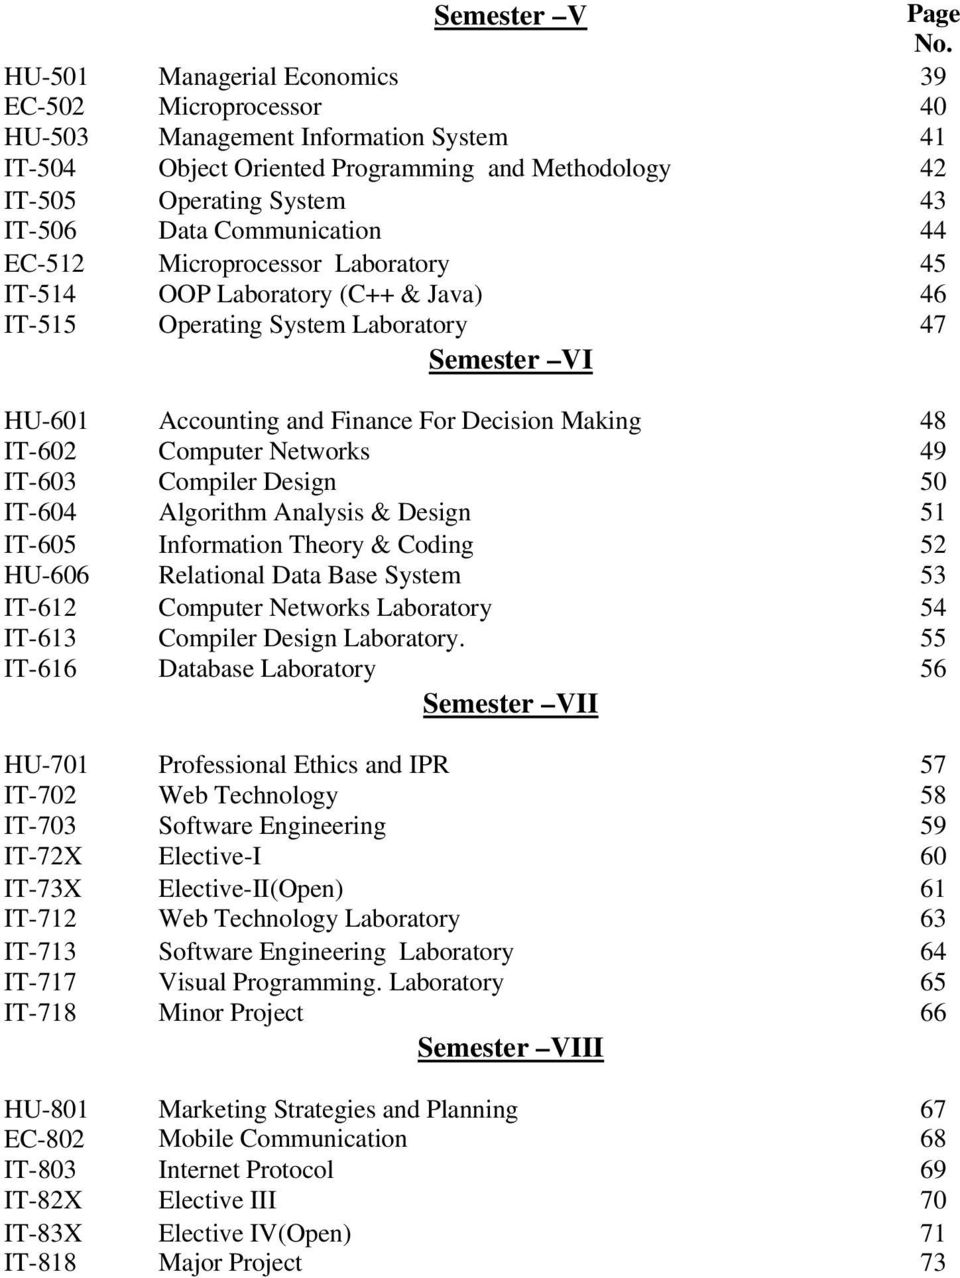 Communication 44 EC-512 Microprocessor Laboratory 45 IT-514 OOP Laboratory (C++ & Java) 46 IT-515 Operating System Laboratory 47 Semester VI HU-601 Accounting and Finance For Decision Making 48